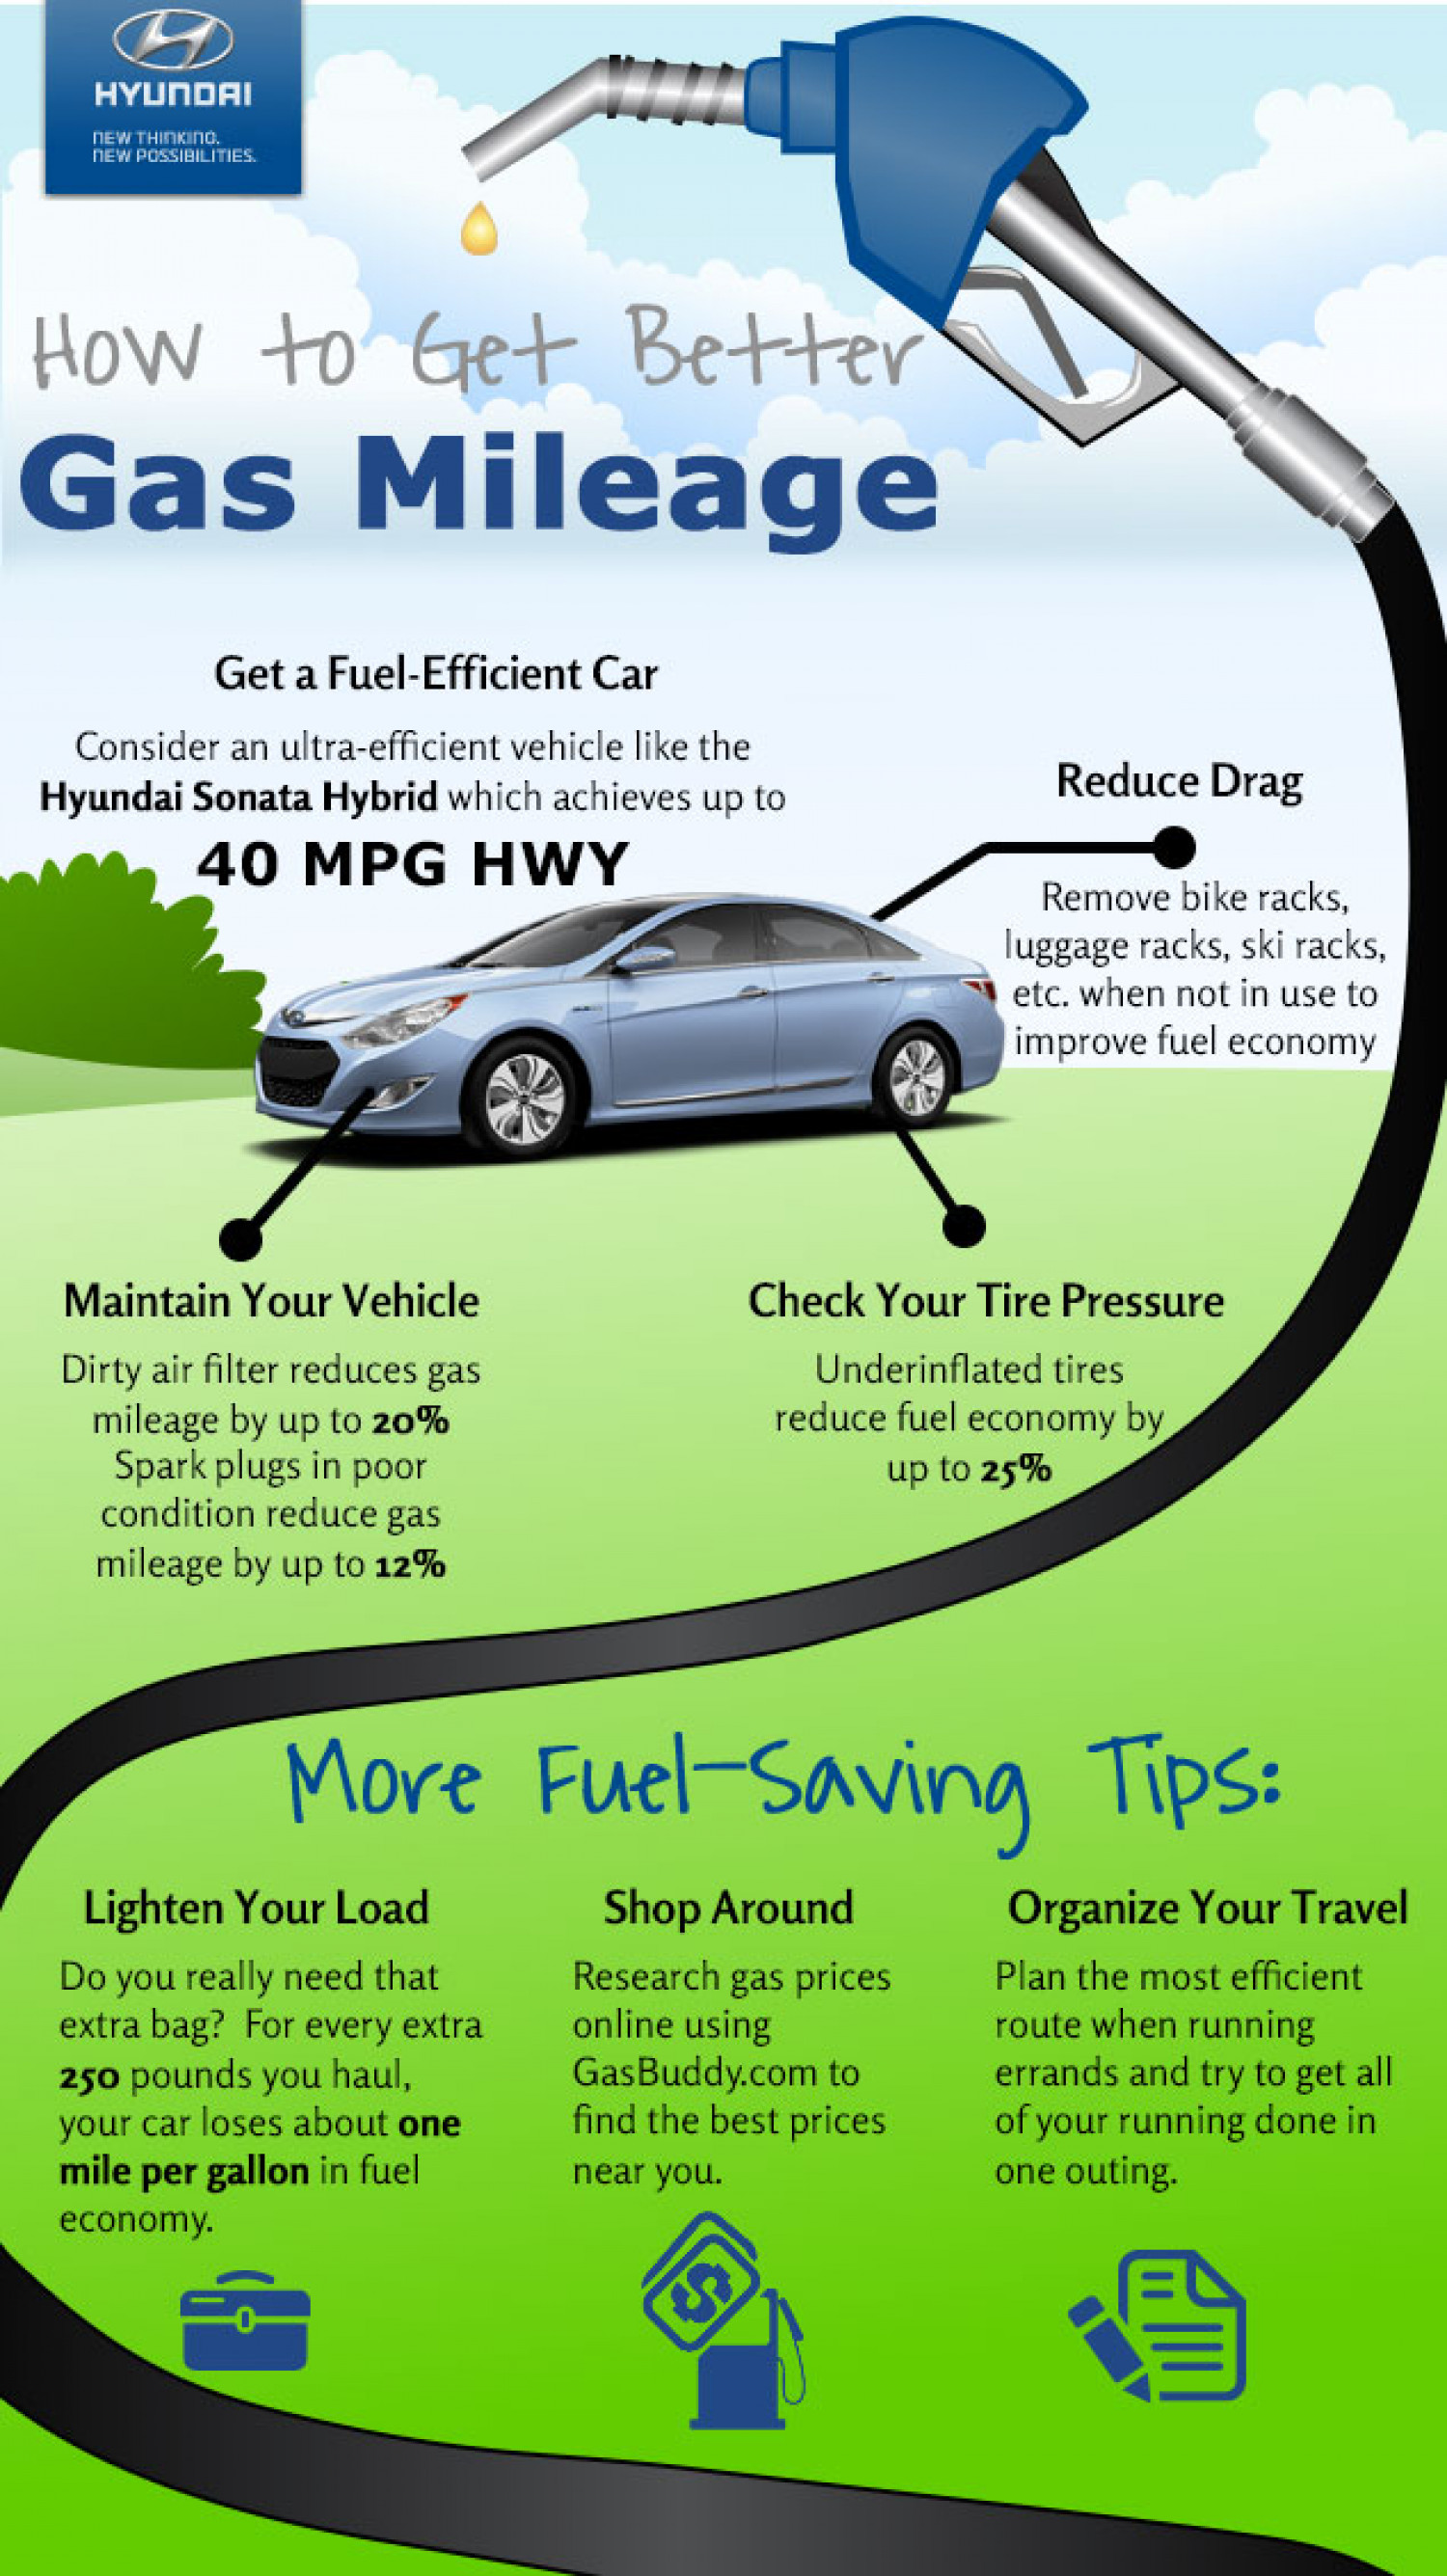 How to Get Better Gas Mileage Infographic